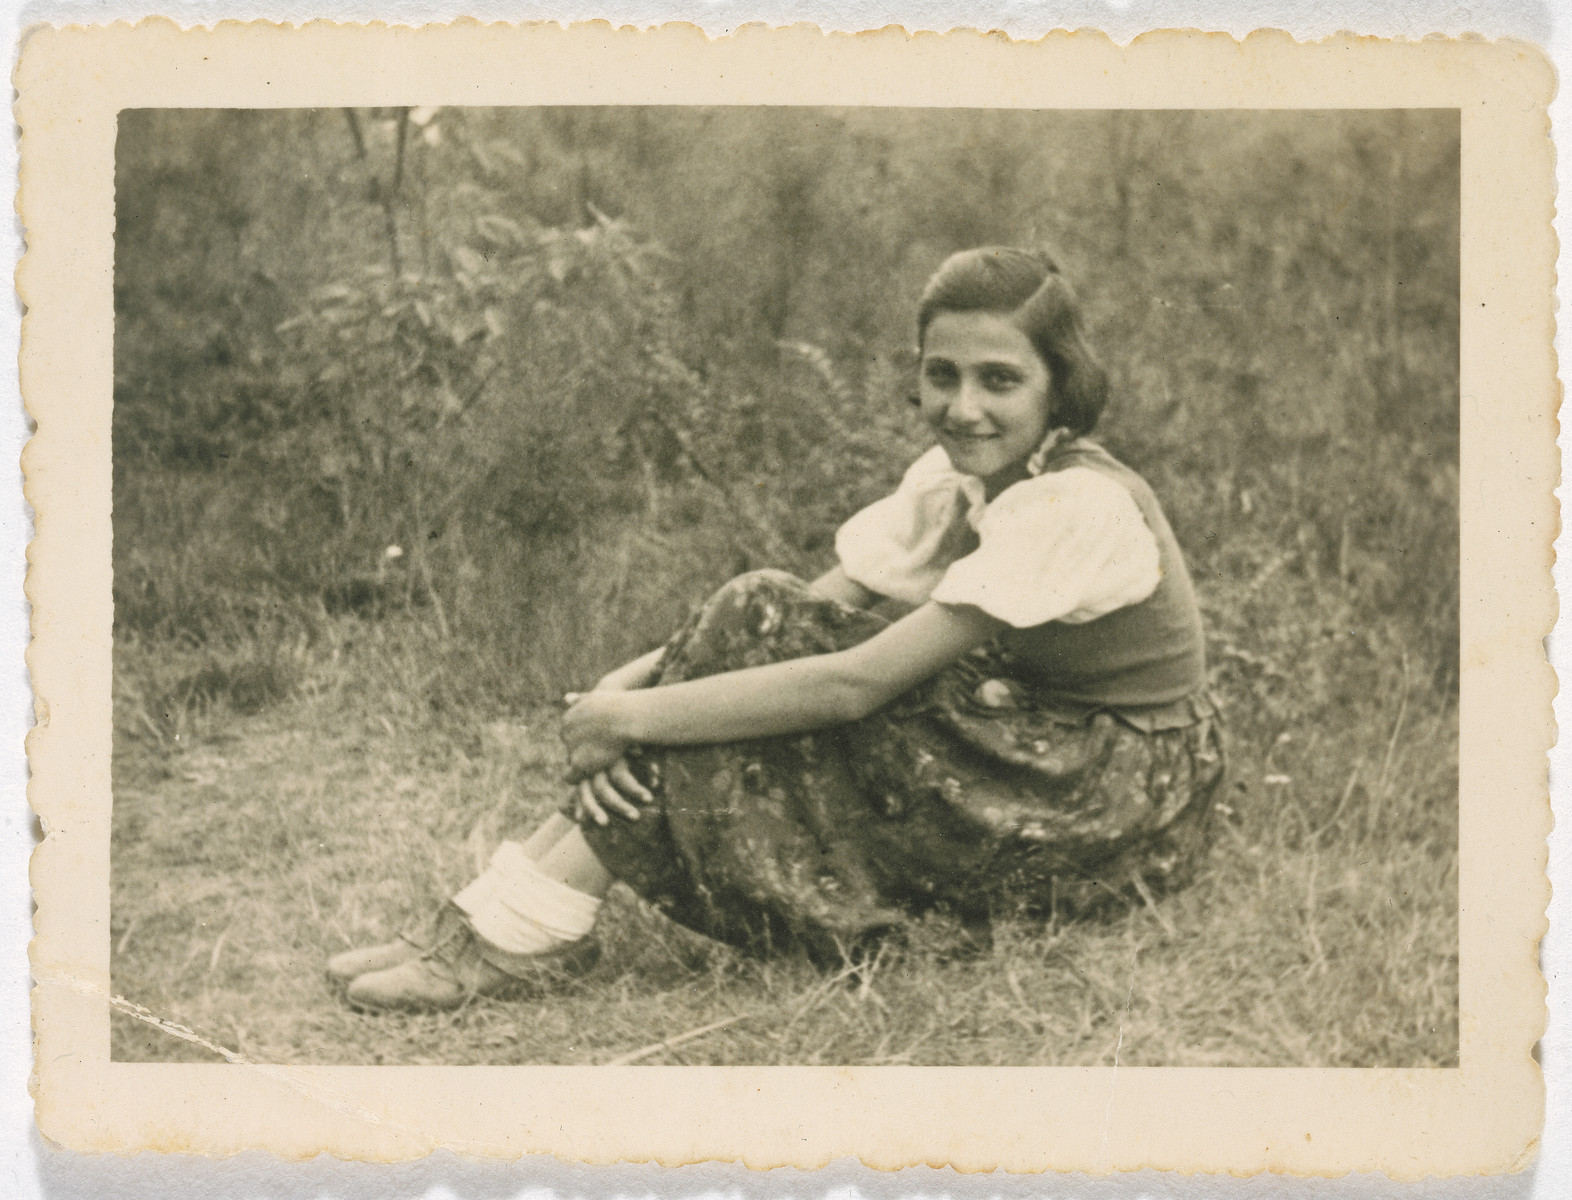 A young girl sits on a grassy field.  Pictured is Marta Rein.